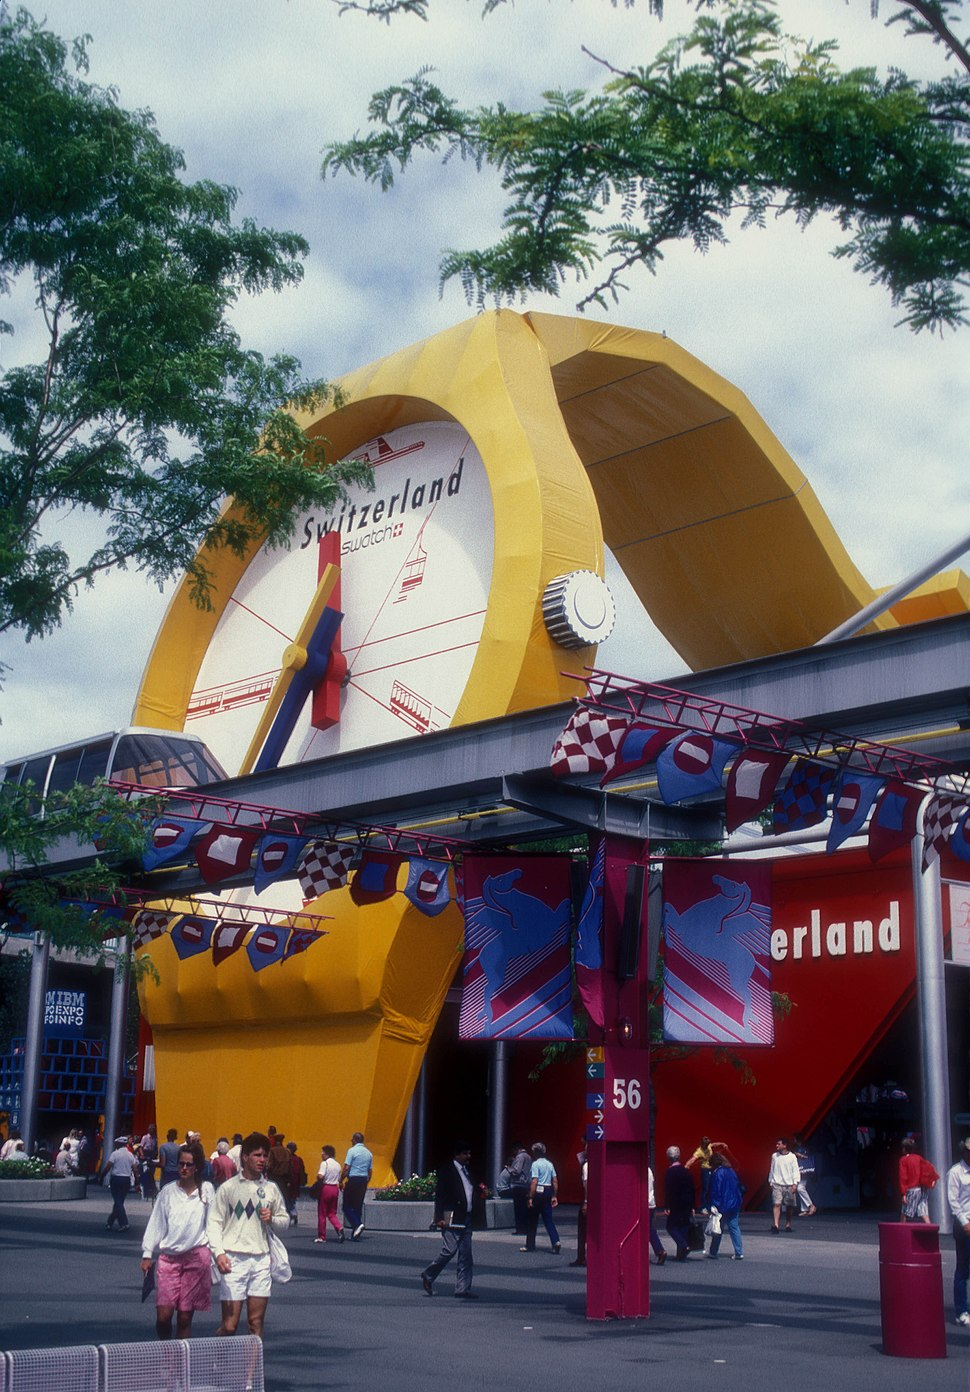 SWITZERLAND PAVILION AT EXPO 86, VANCOUVER, B.C.